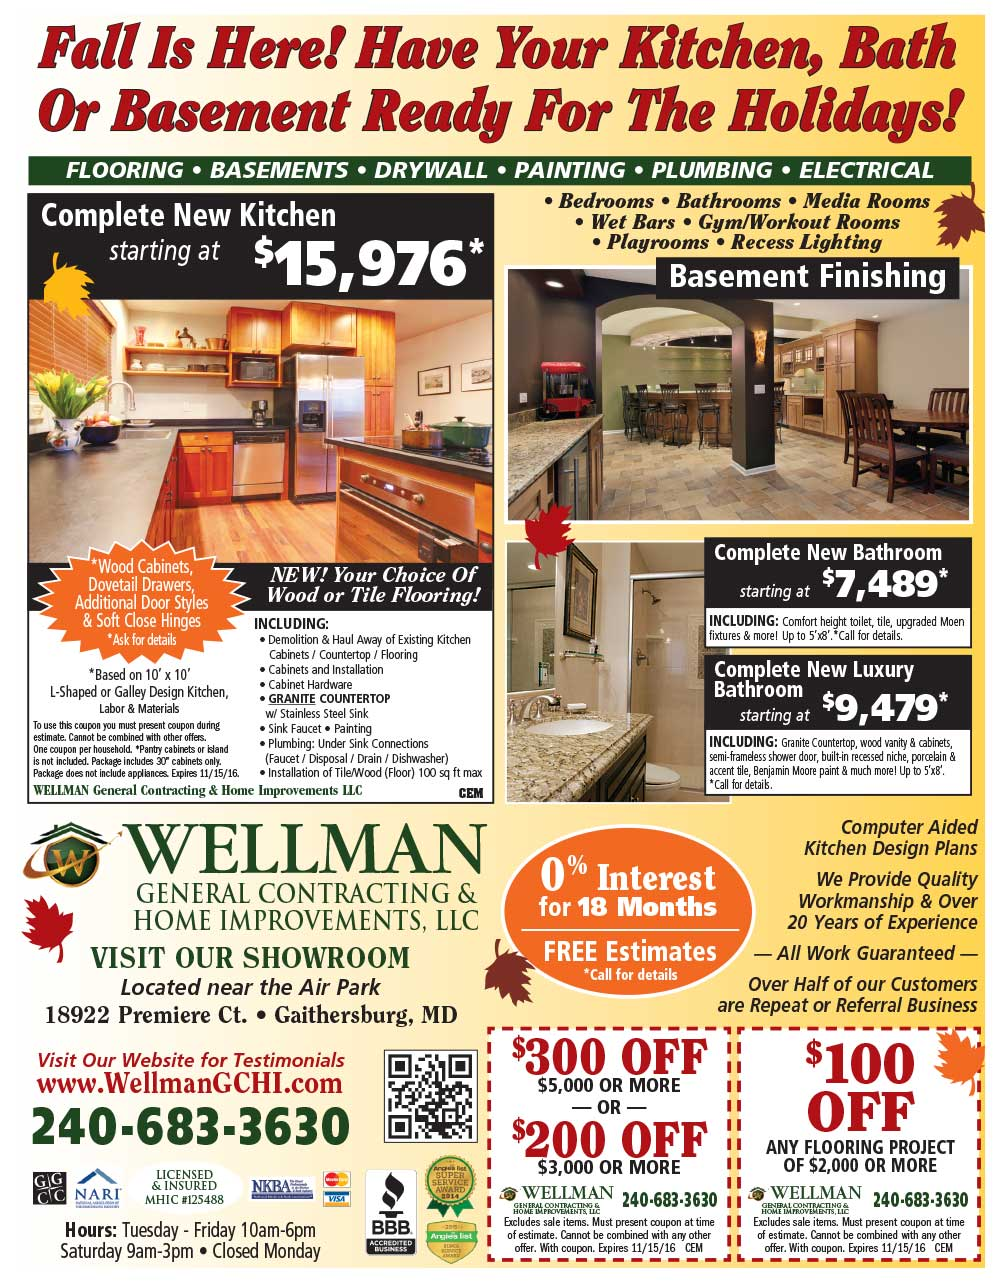 Wellman-Contracting-FP-MONT-Oct-16-rev